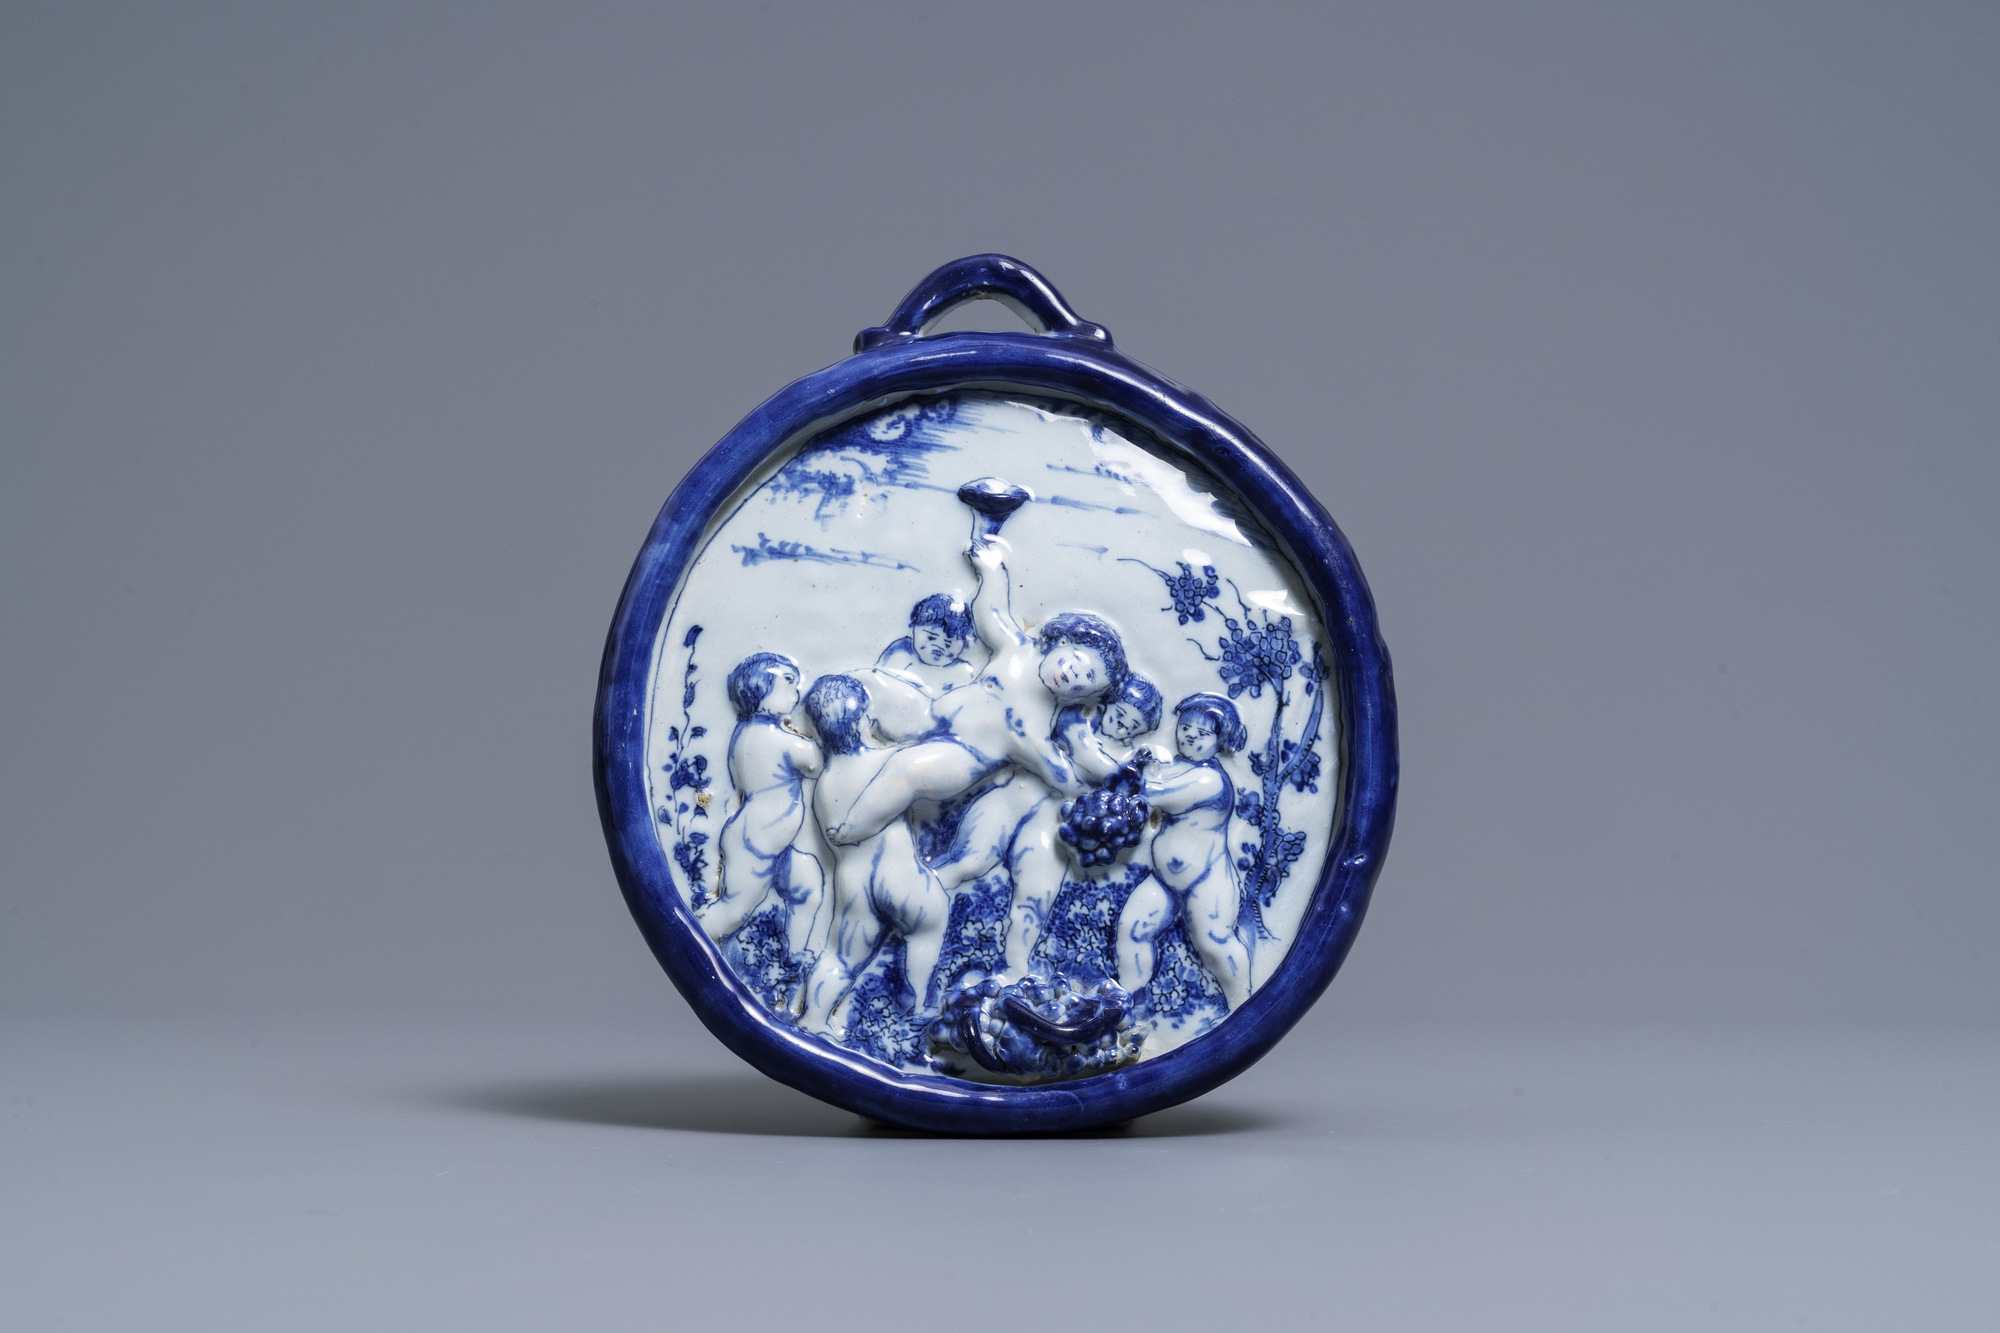 A Dutch Delft blue and white relief-moulded plaque with putti holding grapes, 18th C.